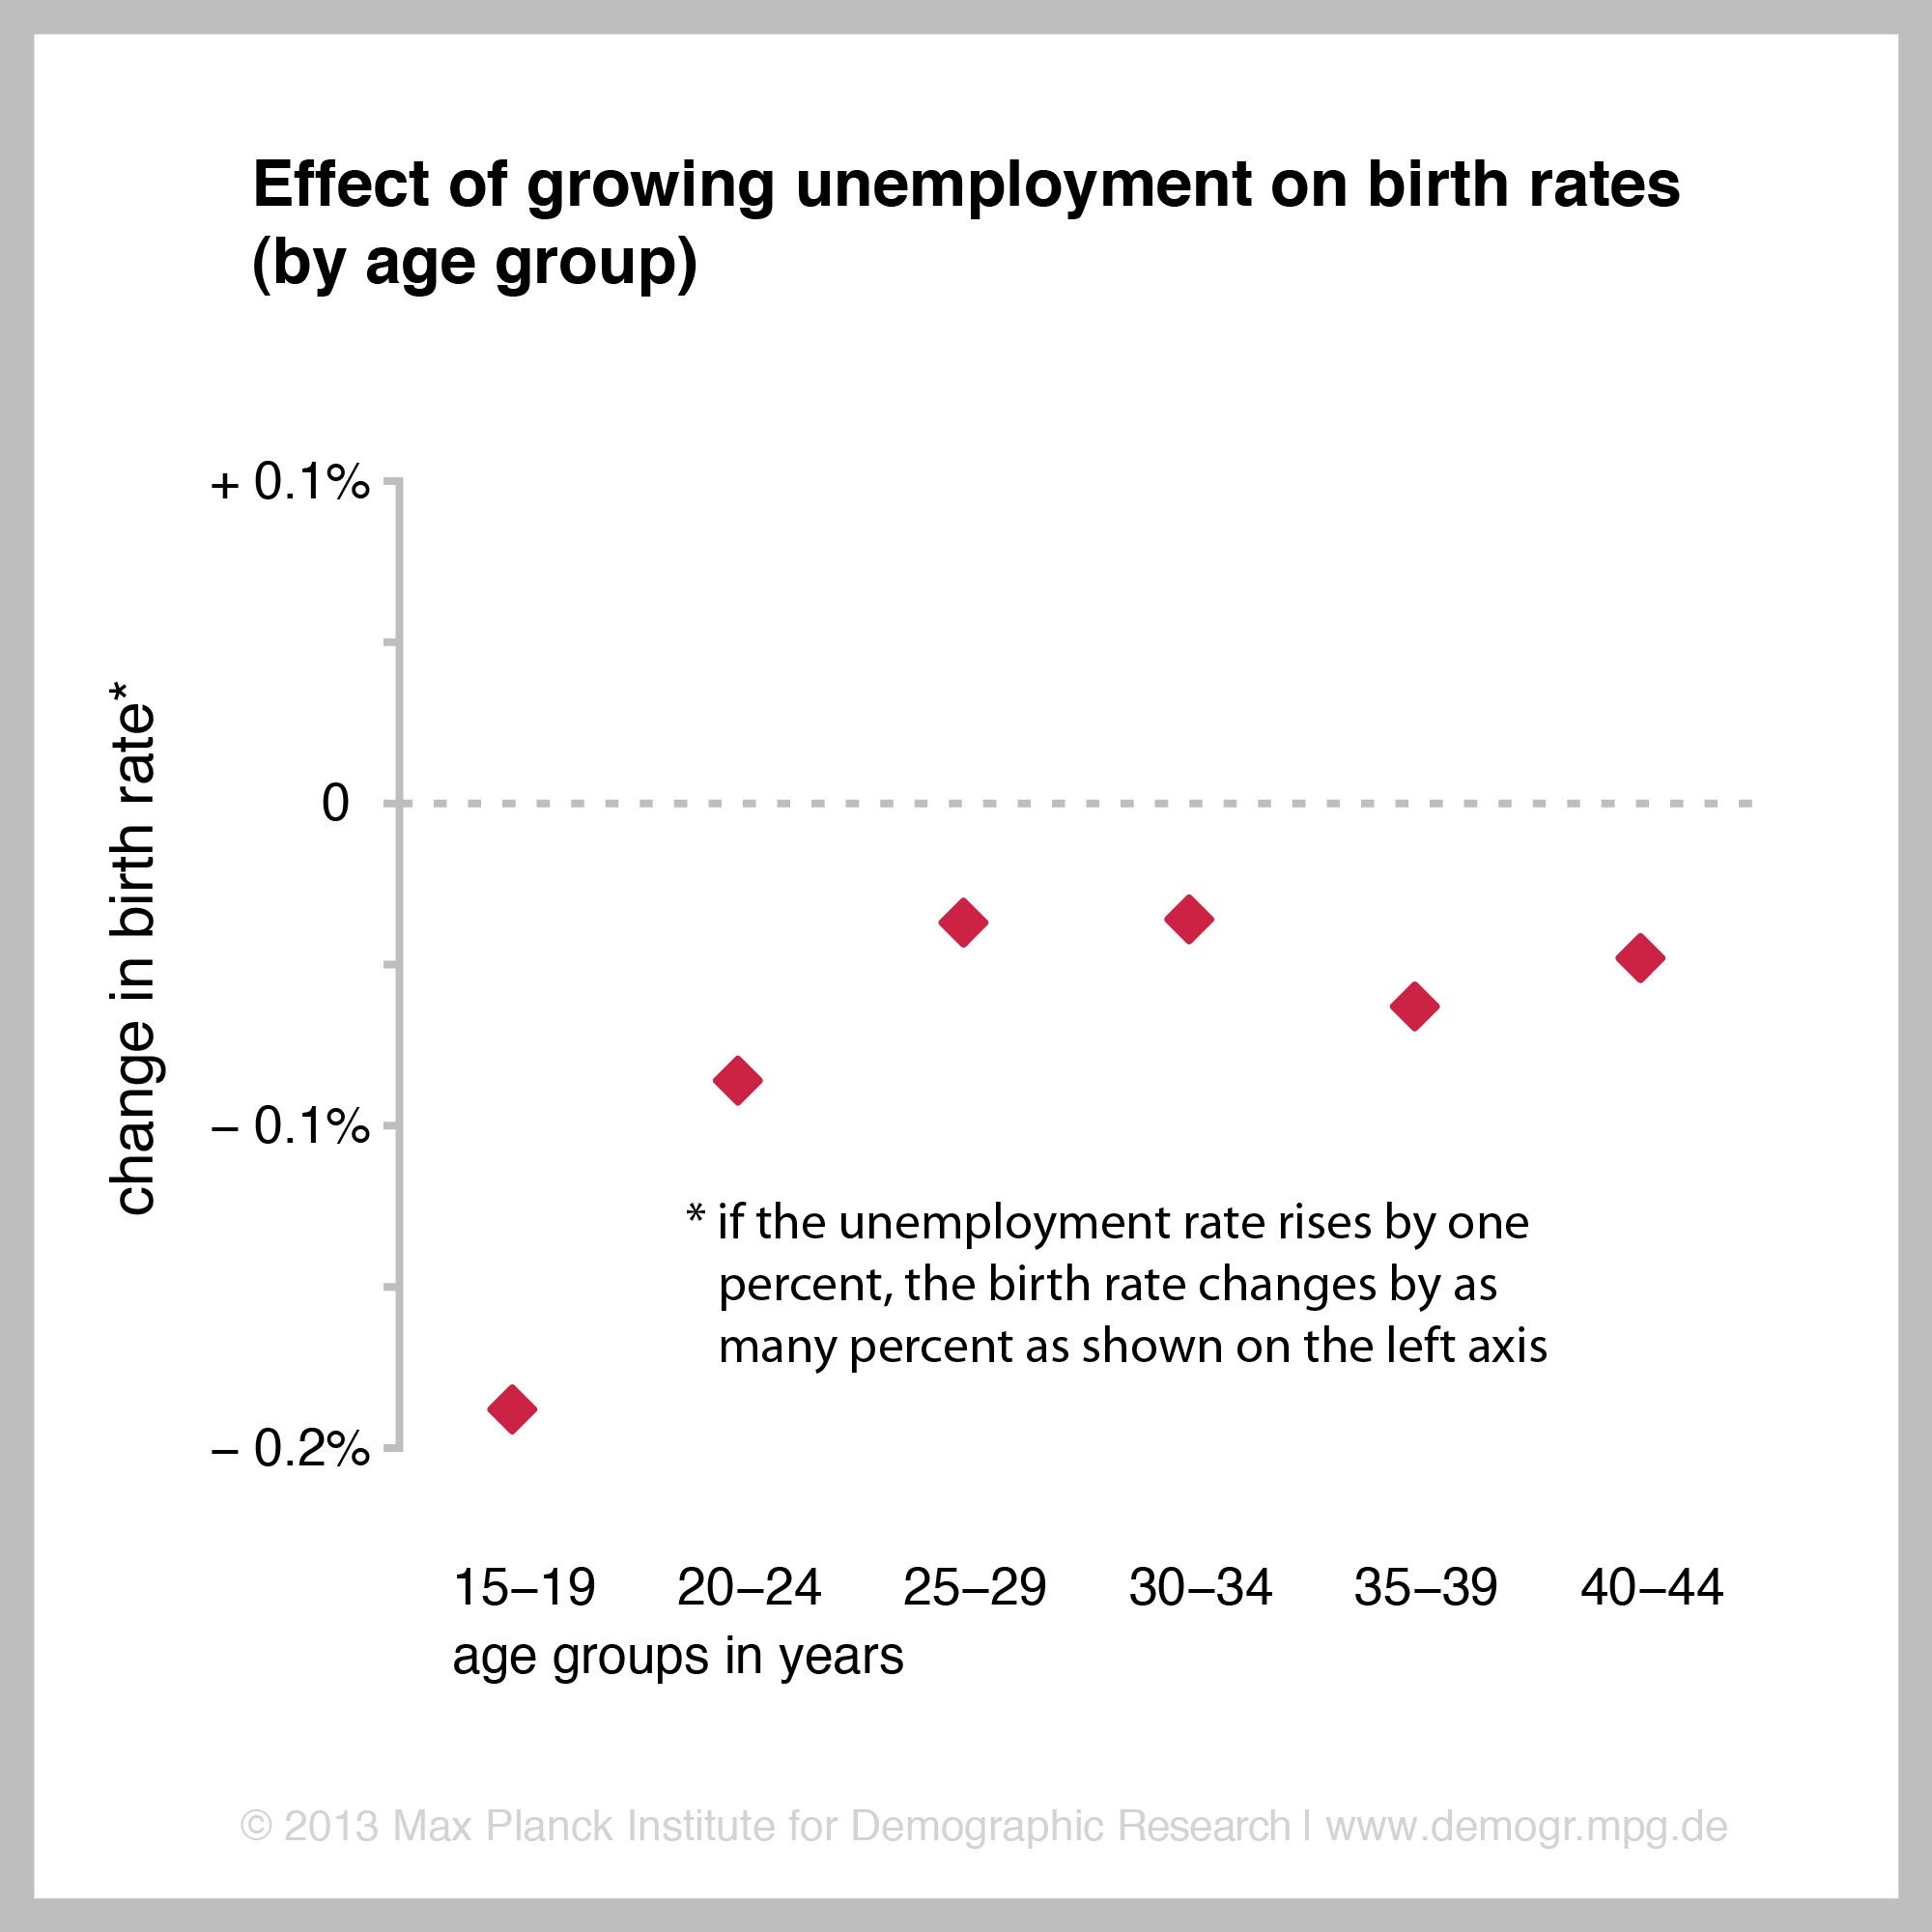 economic crisis lowers birth rates  research shows